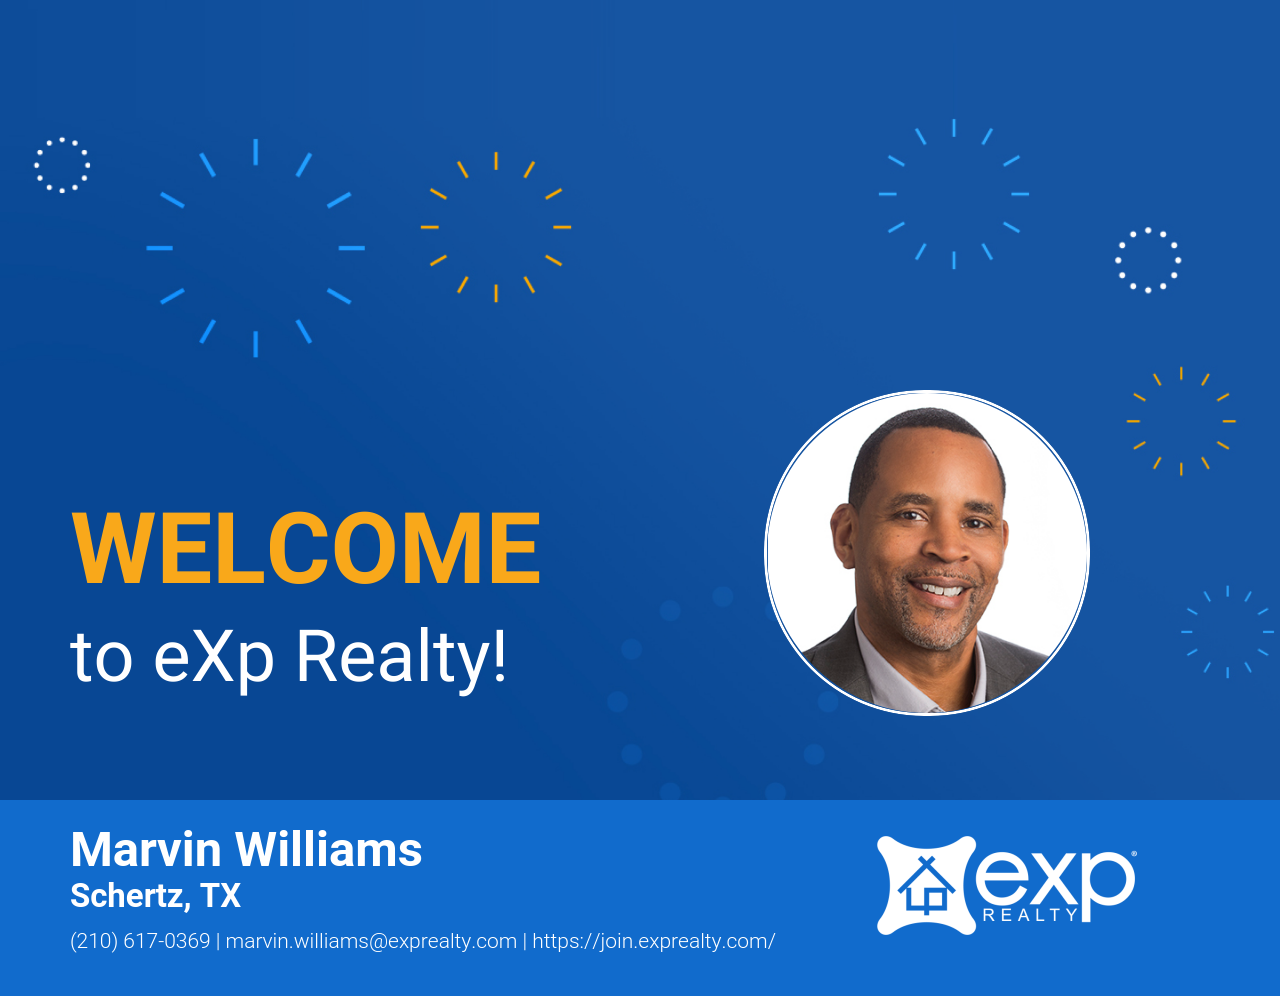 Welcome to eXp Realty Marvin Williams!